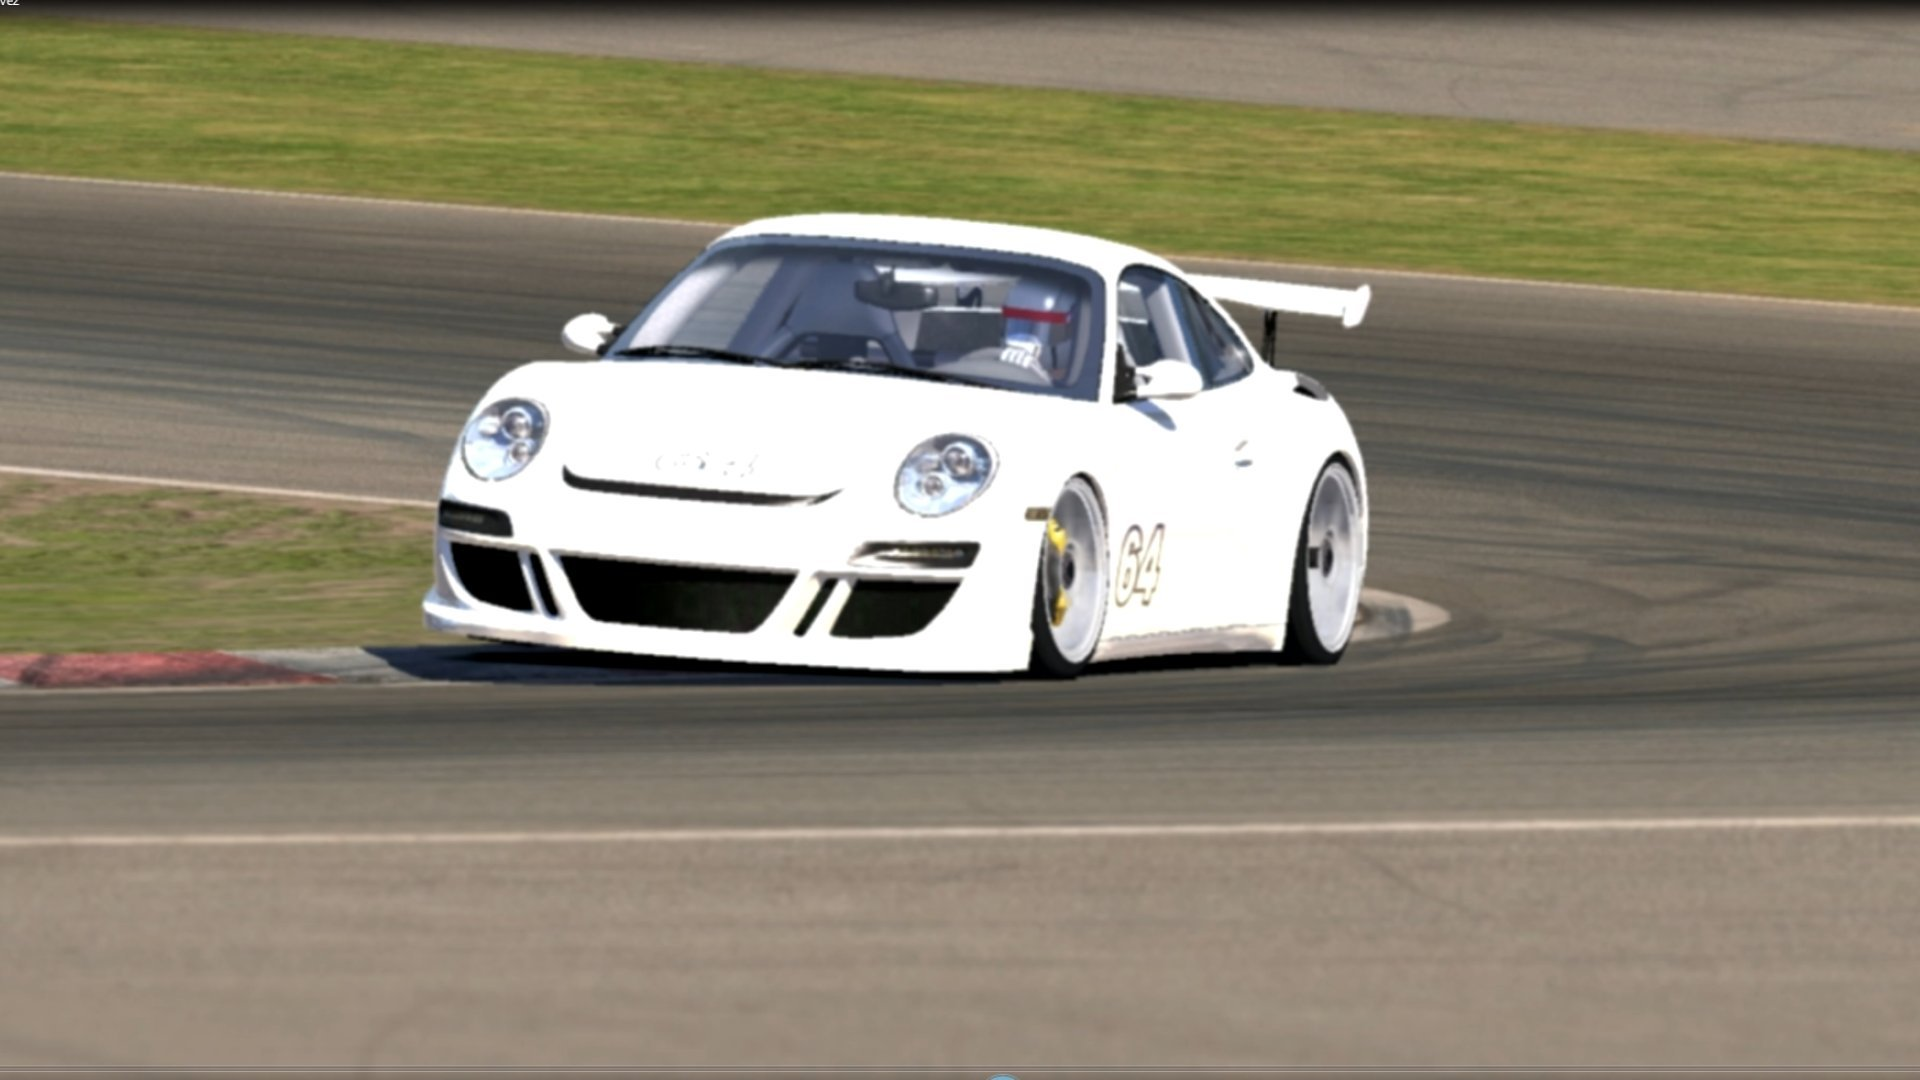 iRacing RUF Test Drive at Daytona and California with Thrustmaster Wheel